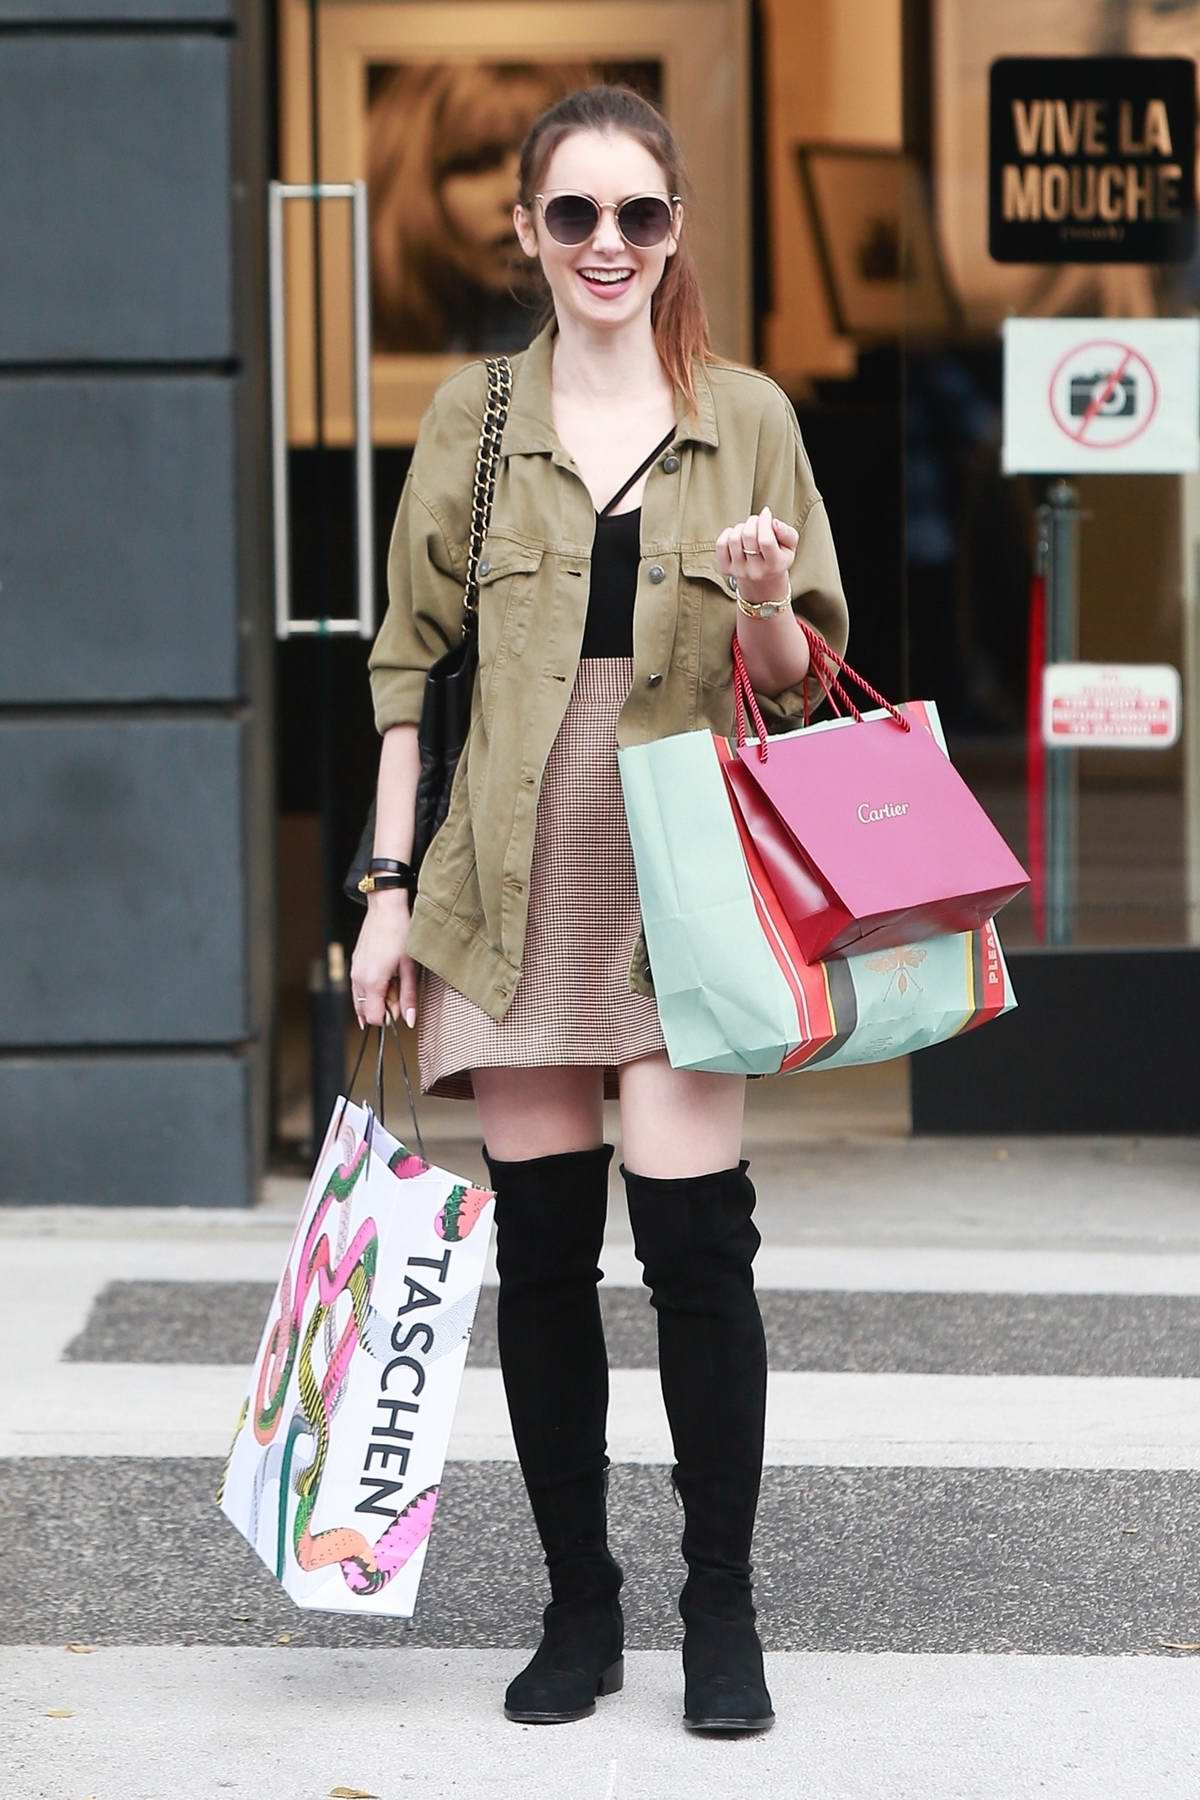 Lily Collins looks cute as she smiles for the camera while out for some shopping in Beverly Hills, Los Angeles